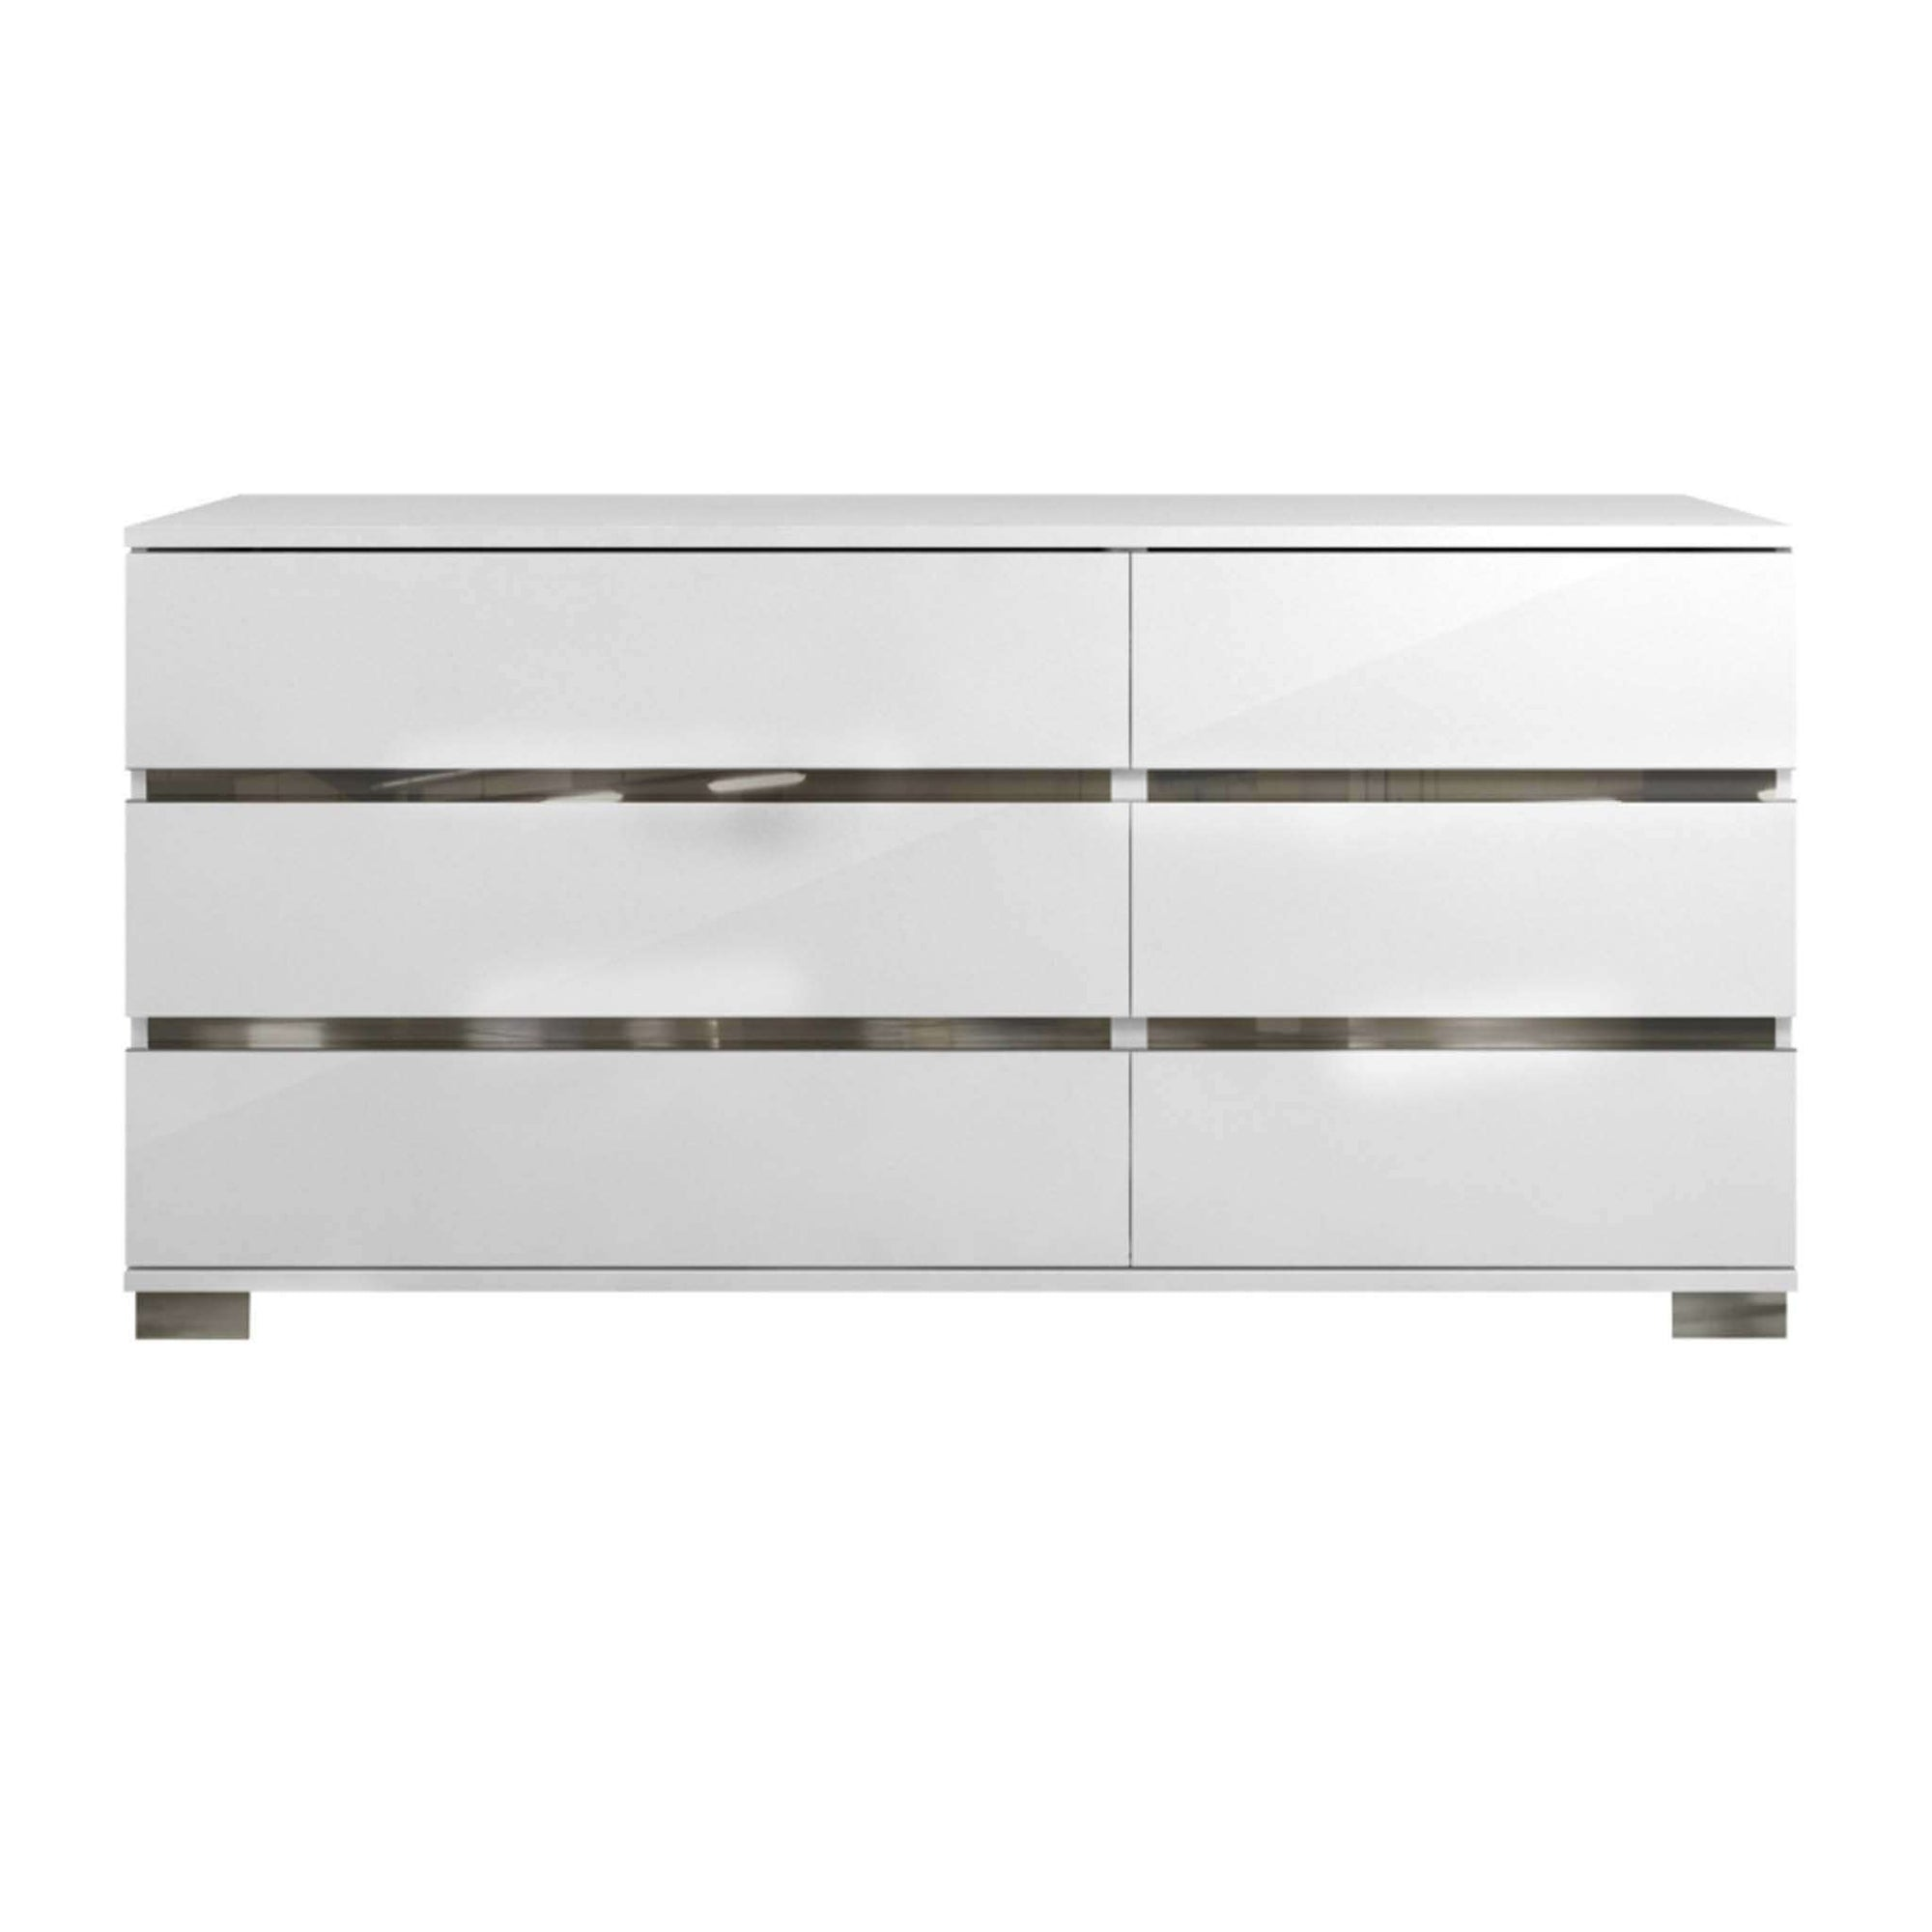 Star International Furniture-Icon Double Dresser-Dresser-MODTEMPO